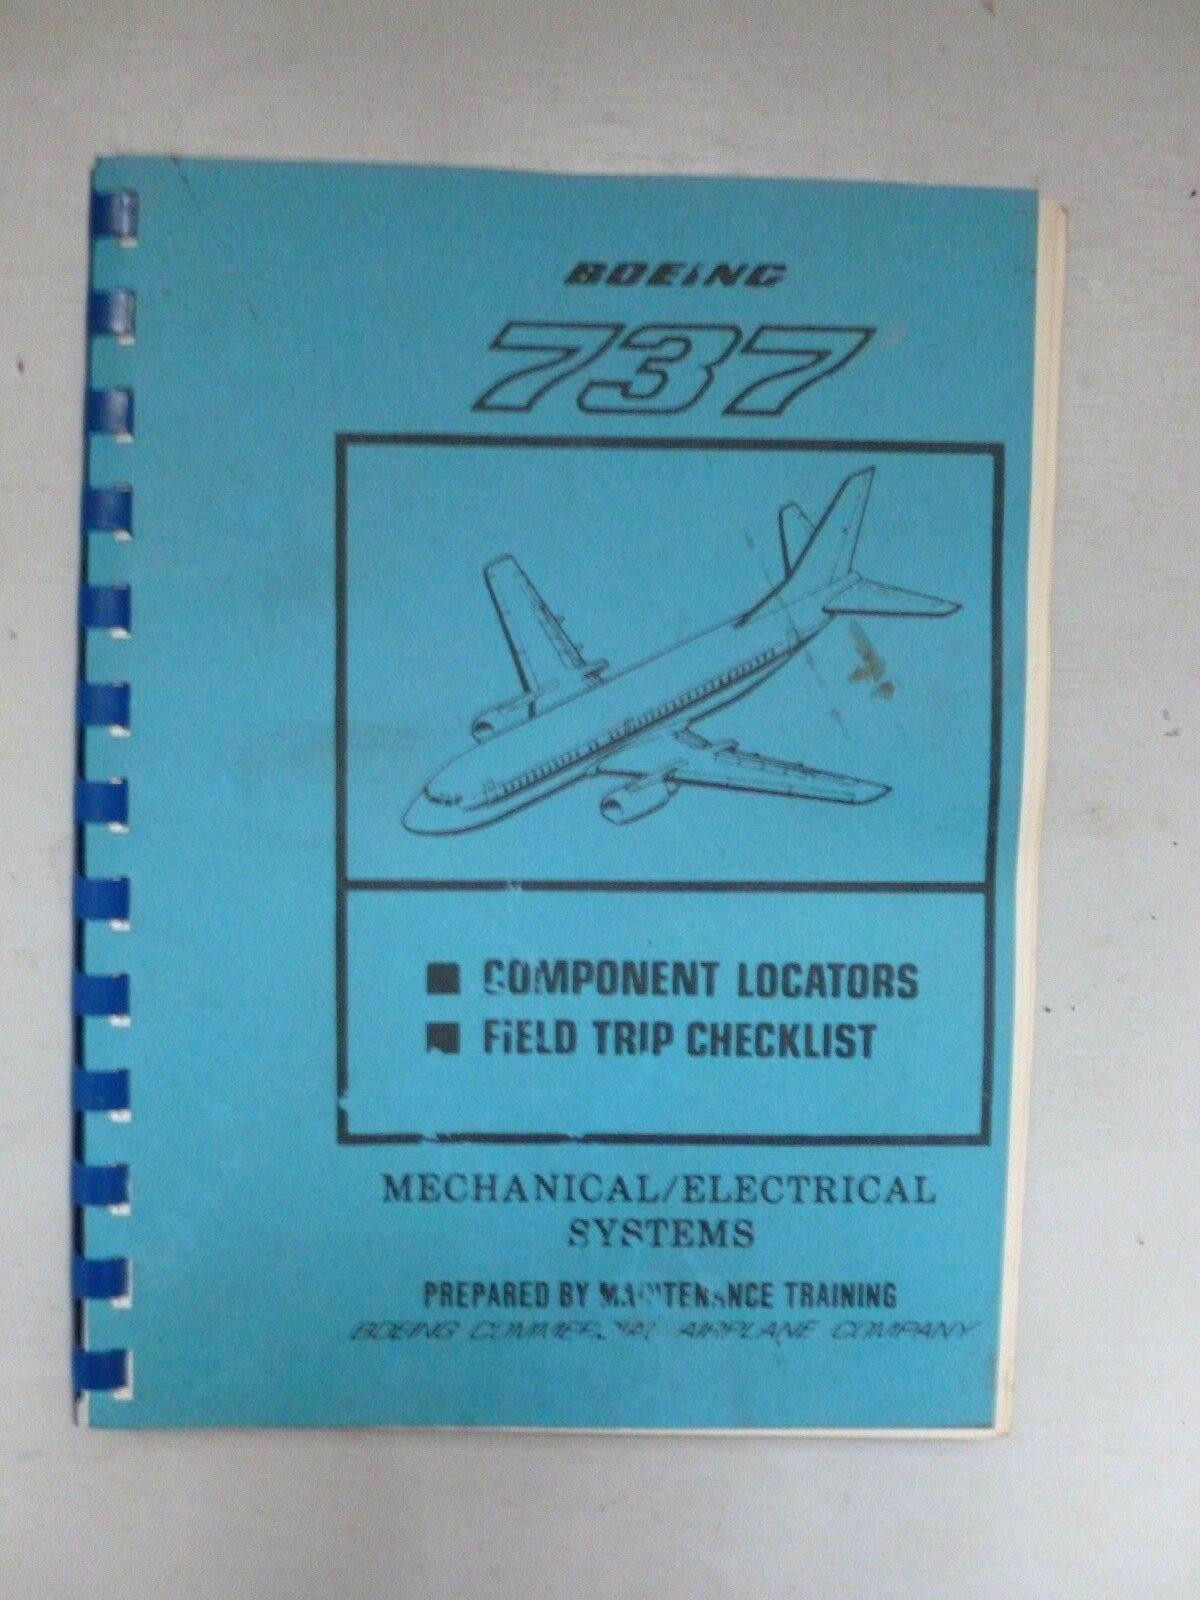 Boeing 737 Maintenance Training Component Locators & Field (Test) Trip  Checklist 1 of 3Only 1 available ...